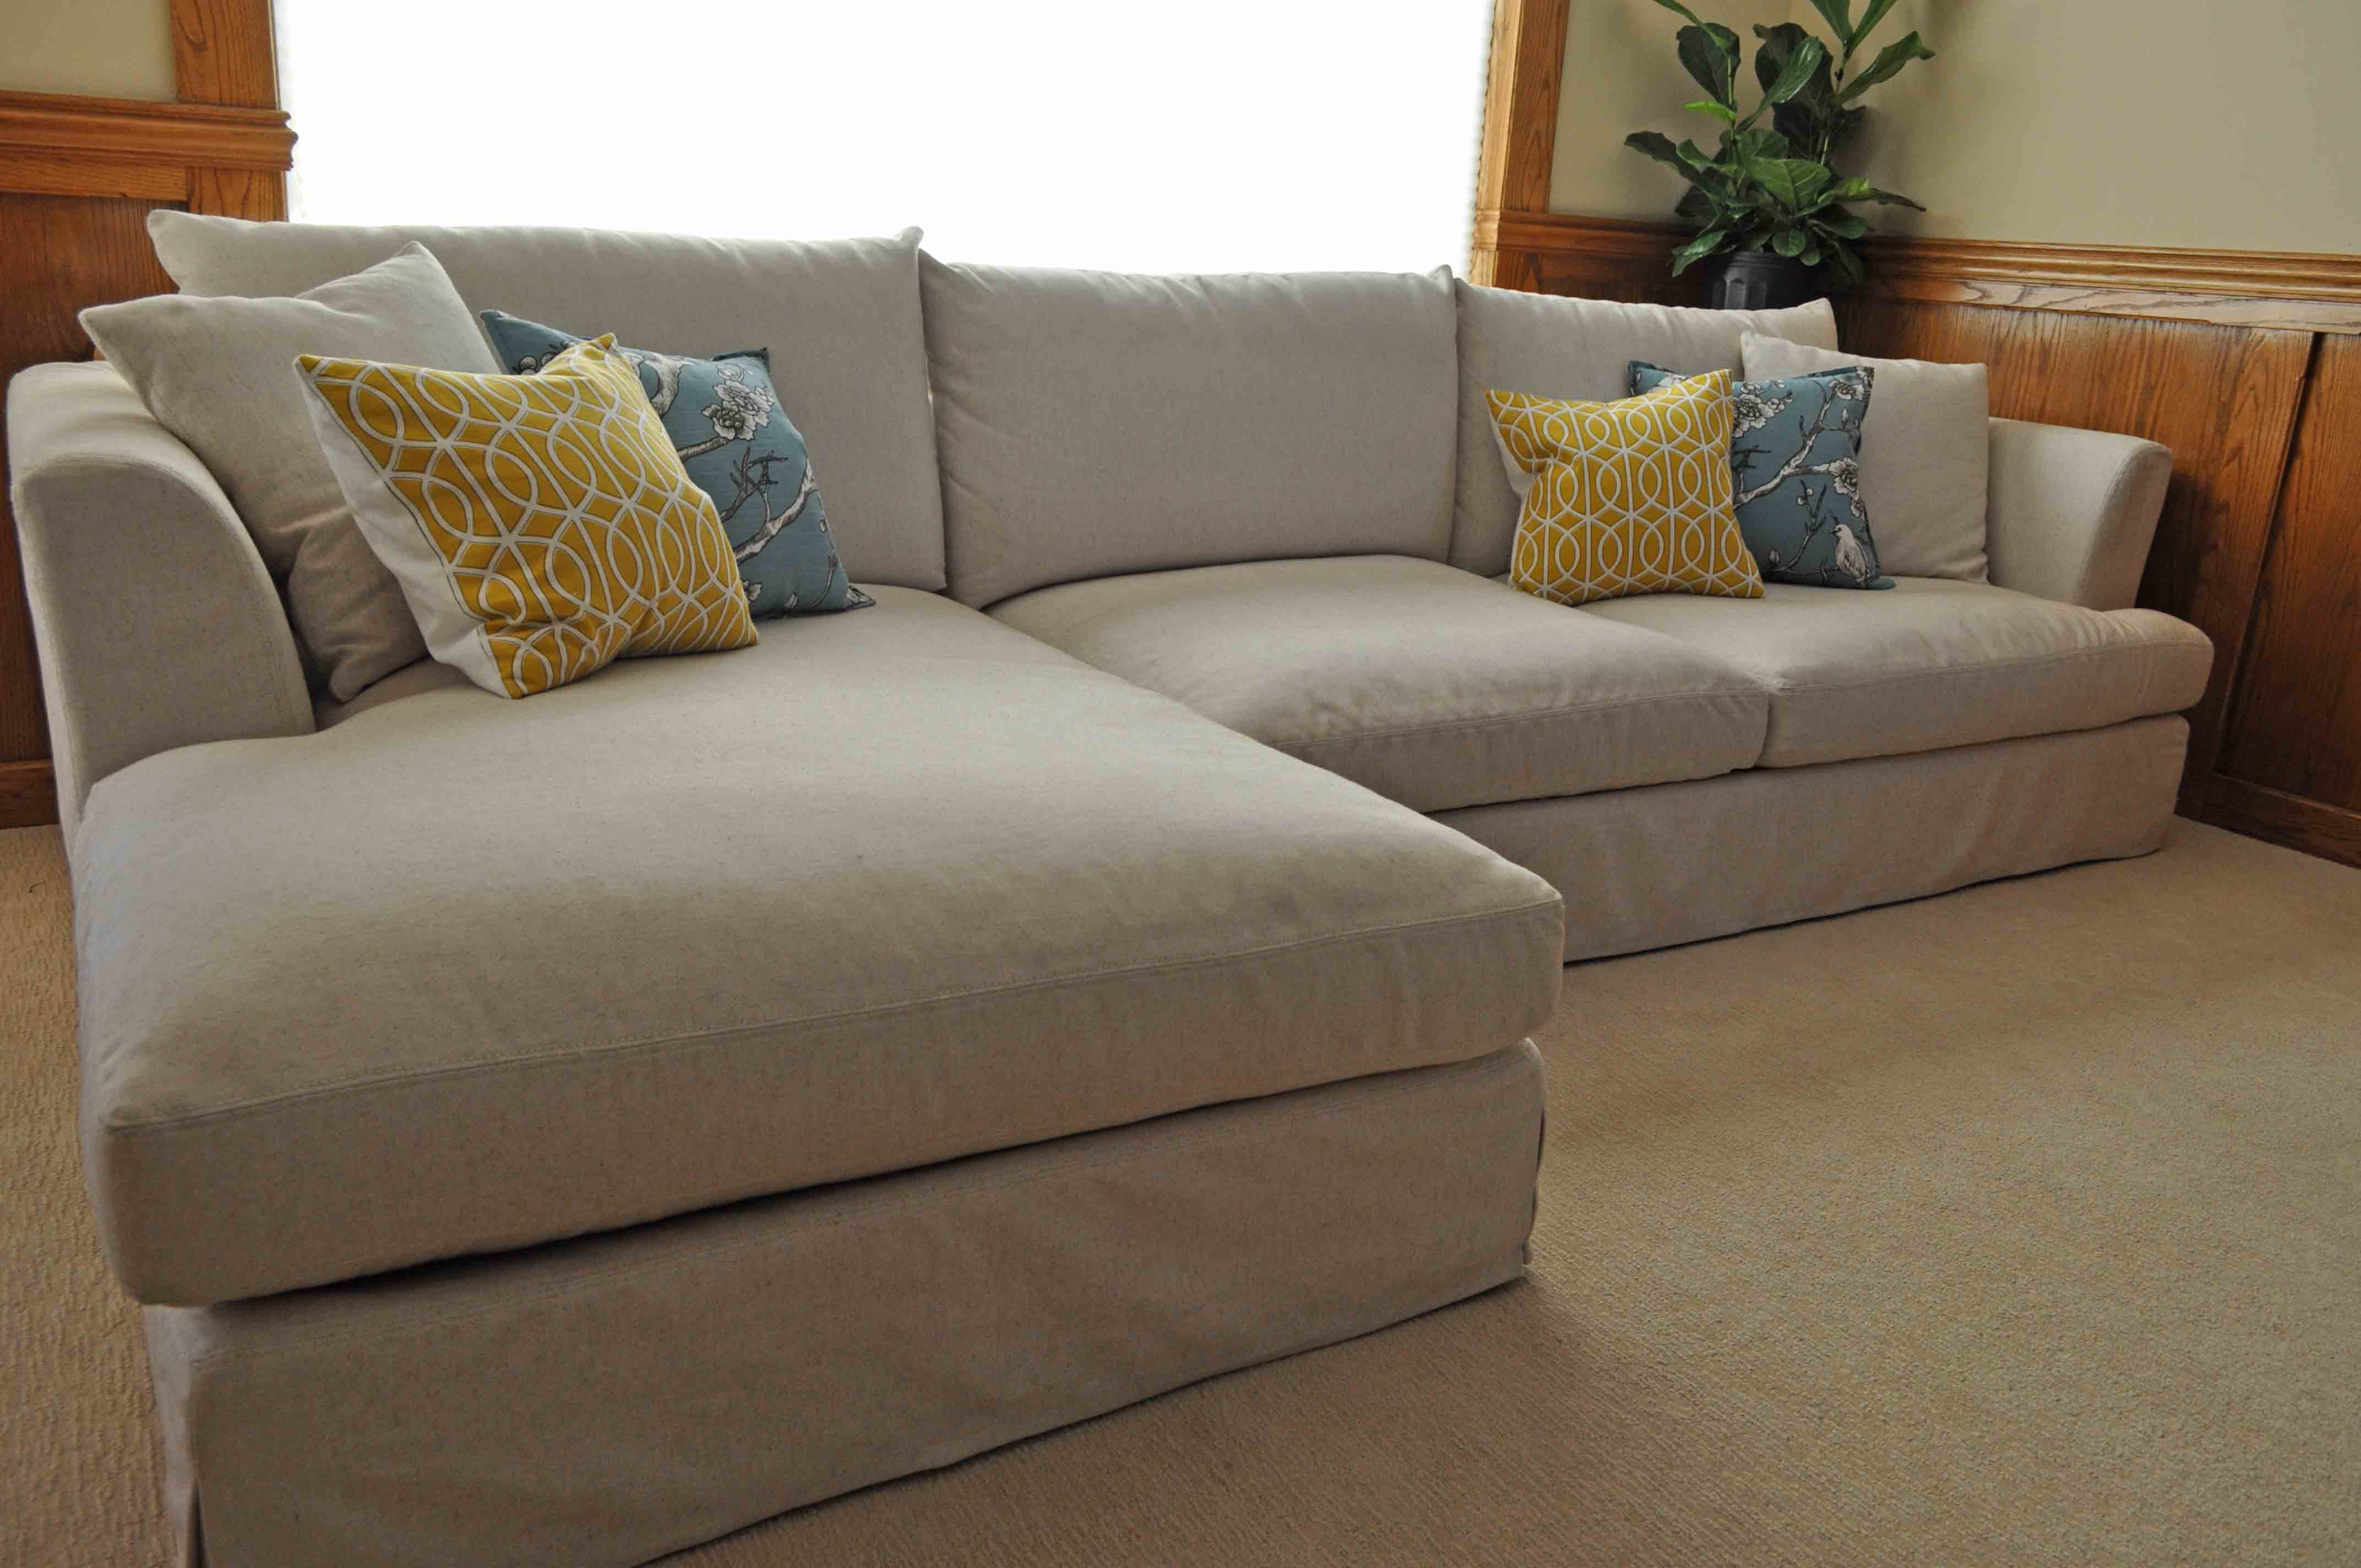 Ottawa Sale Sectional Sofas For Recent Furniture : Tufted Fabric Ottoman Bench Oversized Furniture Throws (View 6 of 15)